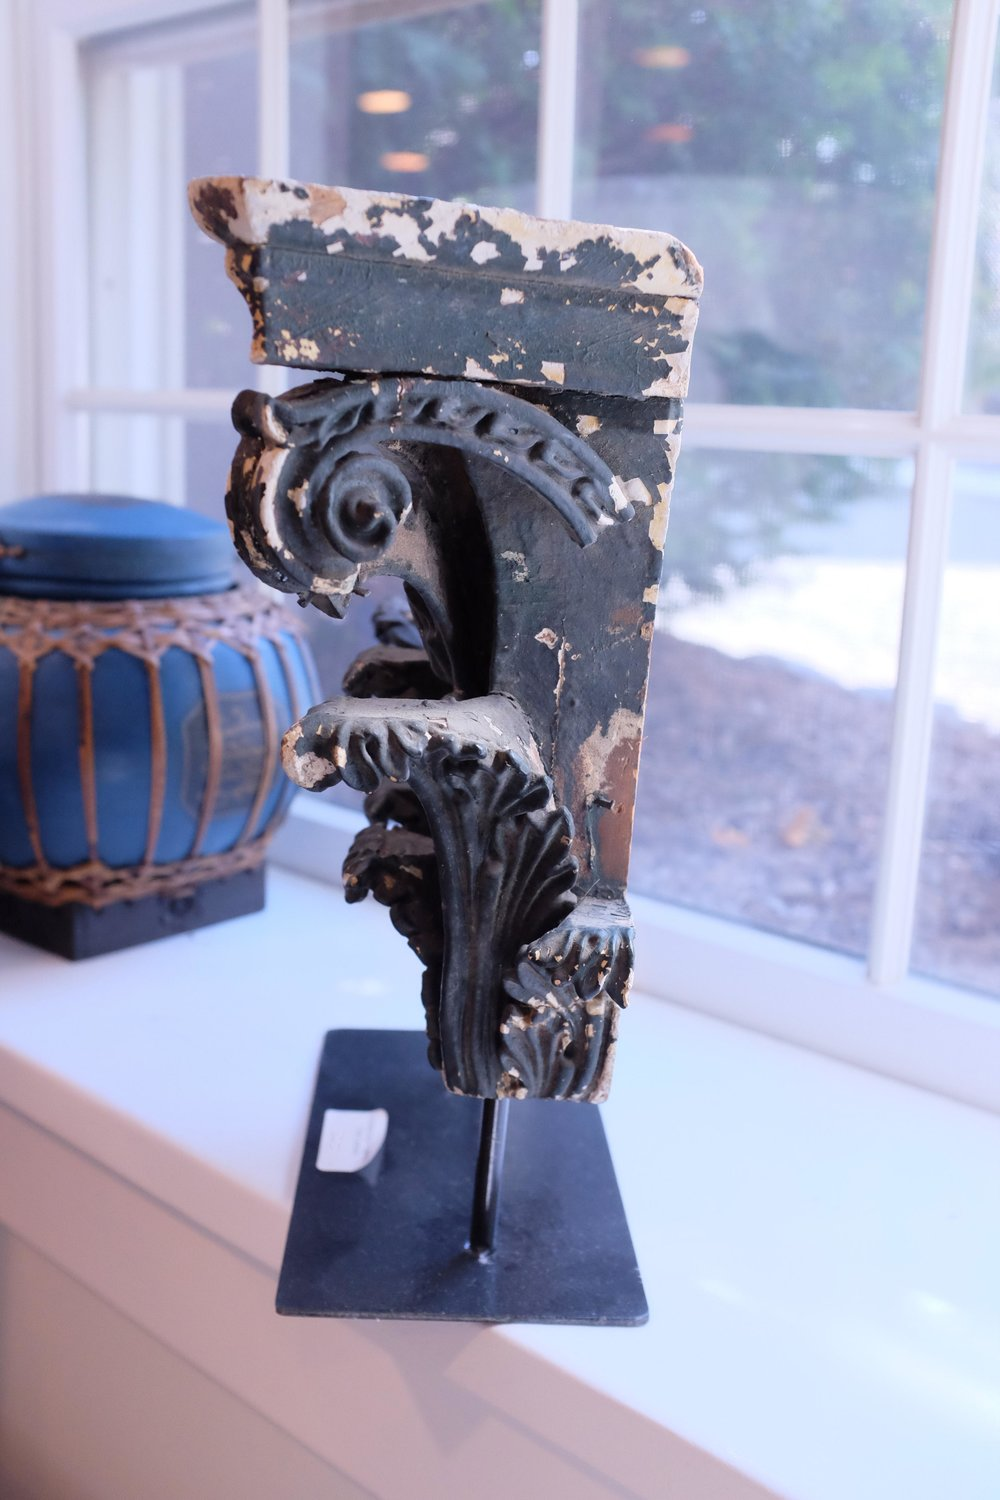 corinthian-style-architectural-fragment-from-15th-century-on-pedestal-7896.jpeg